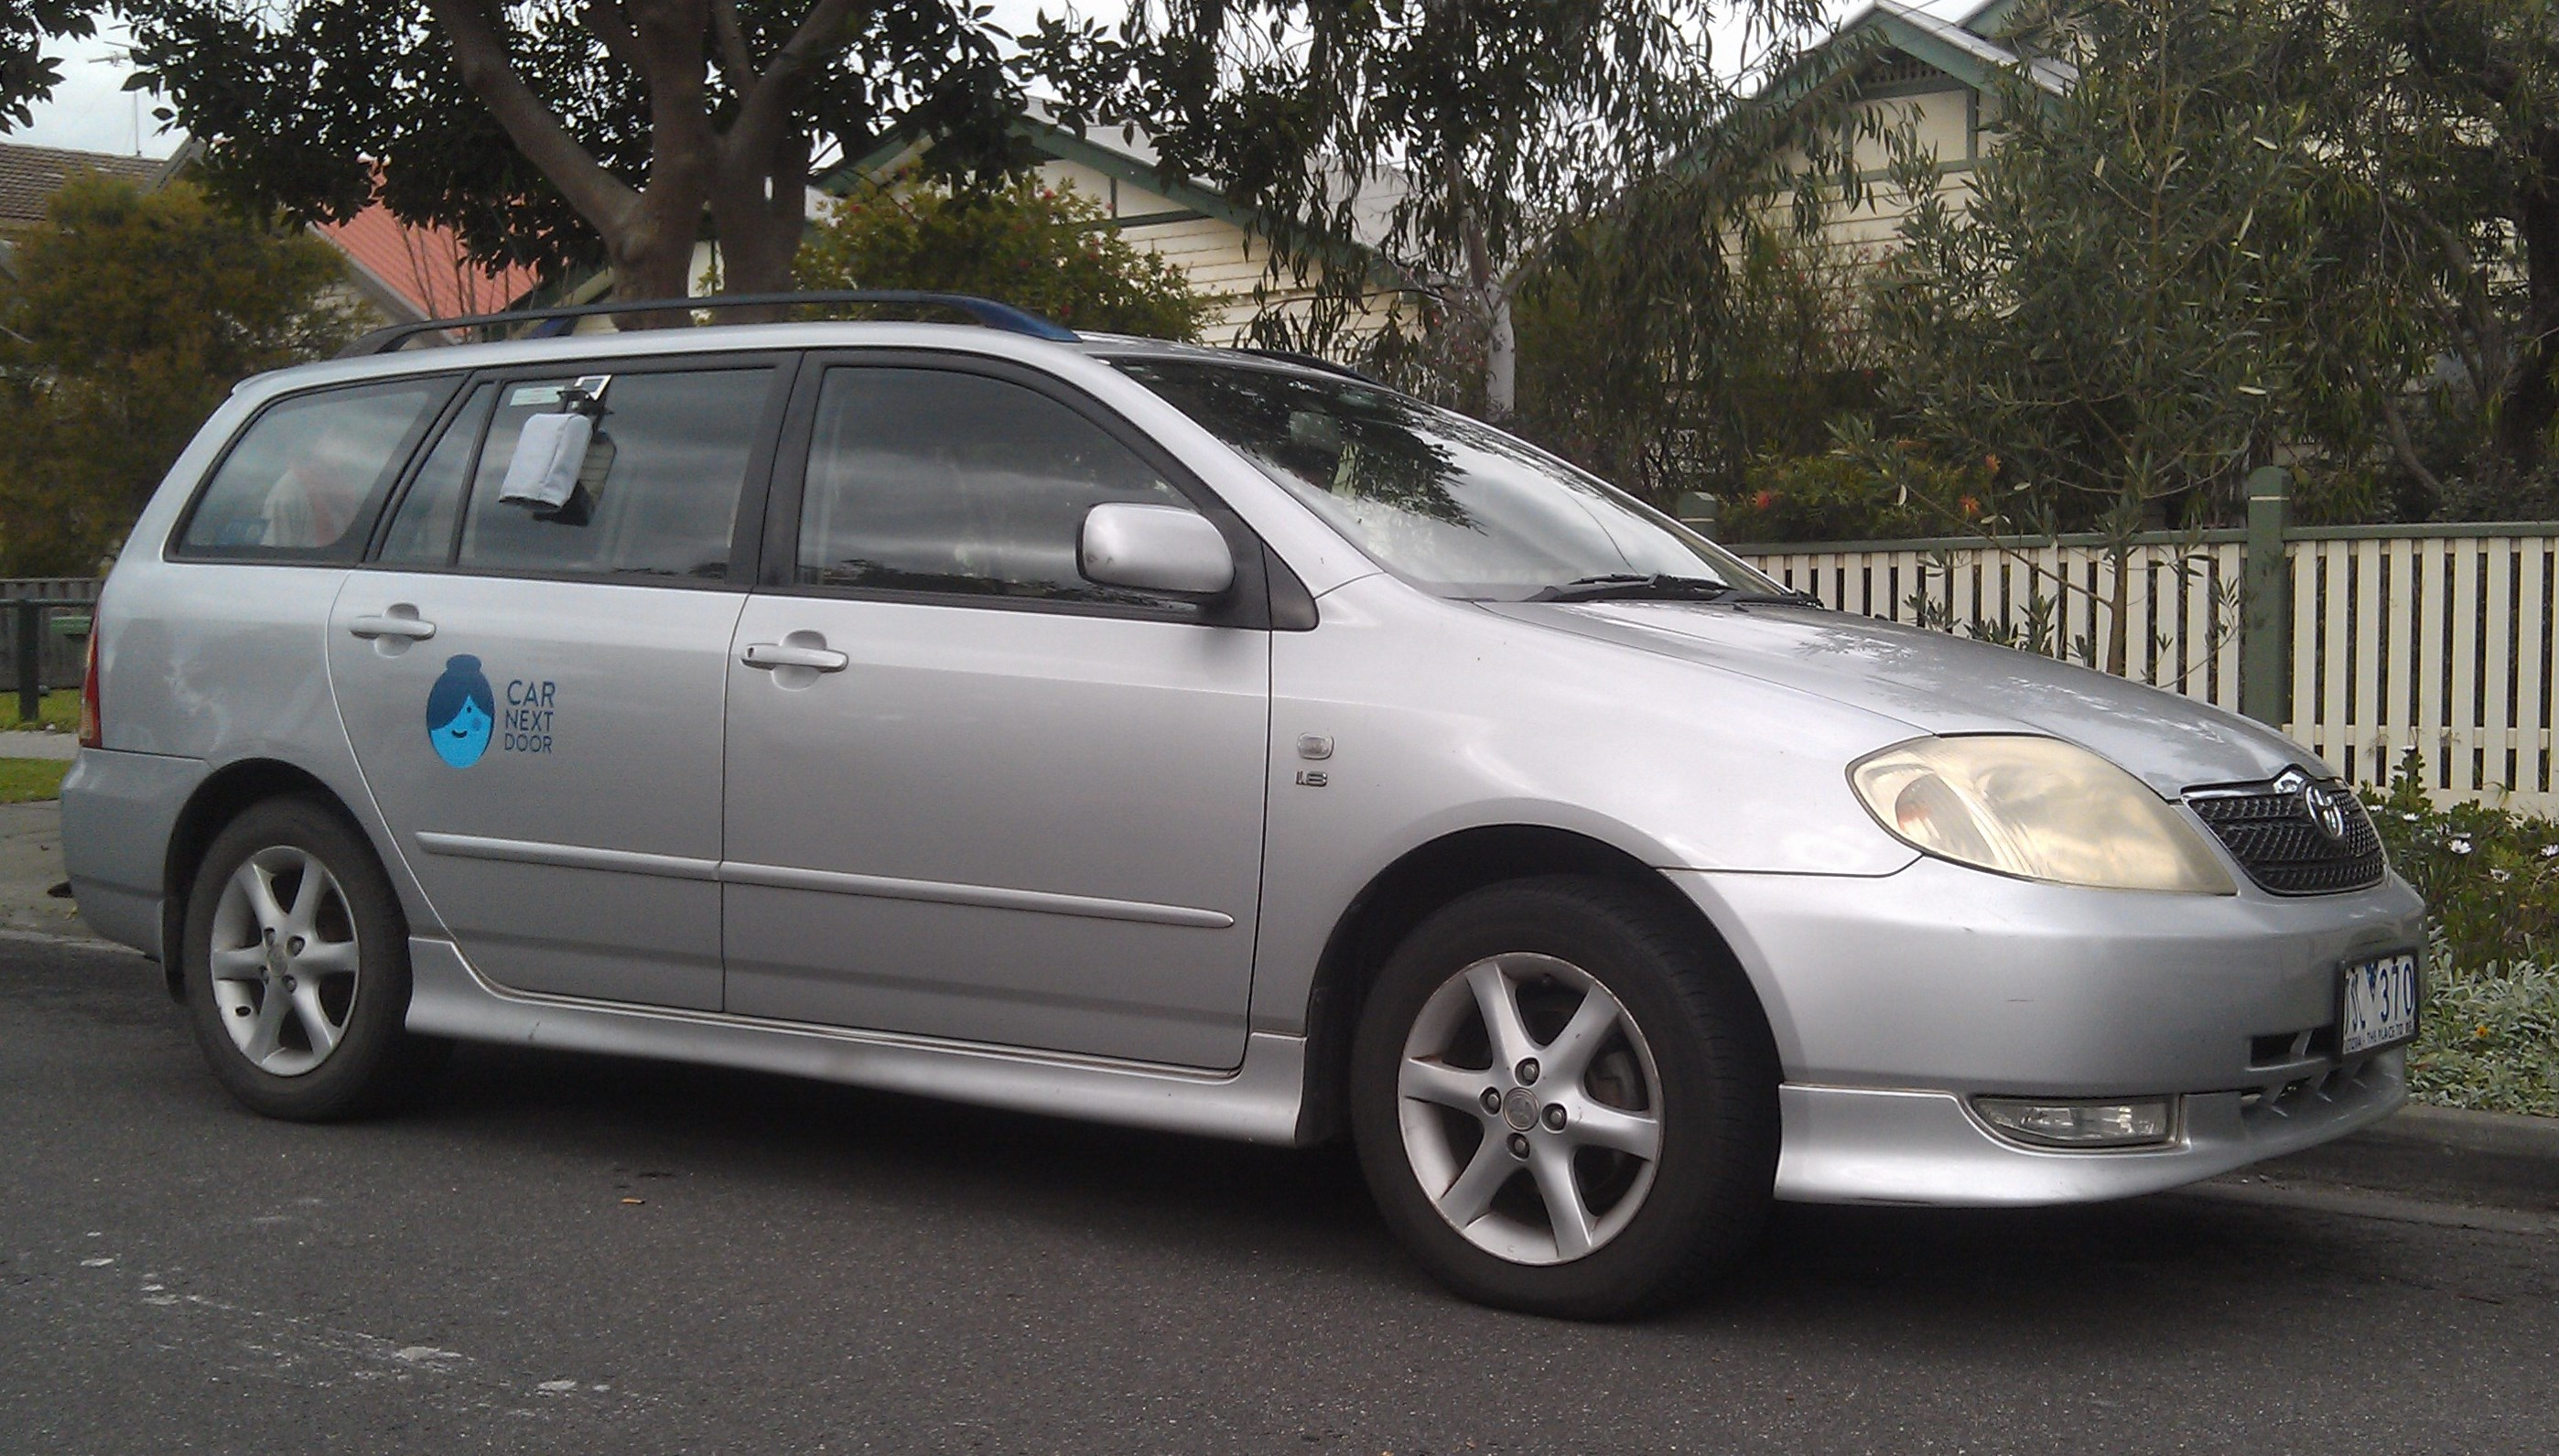 Picture of Eleni's 2003 Toyota Corolla